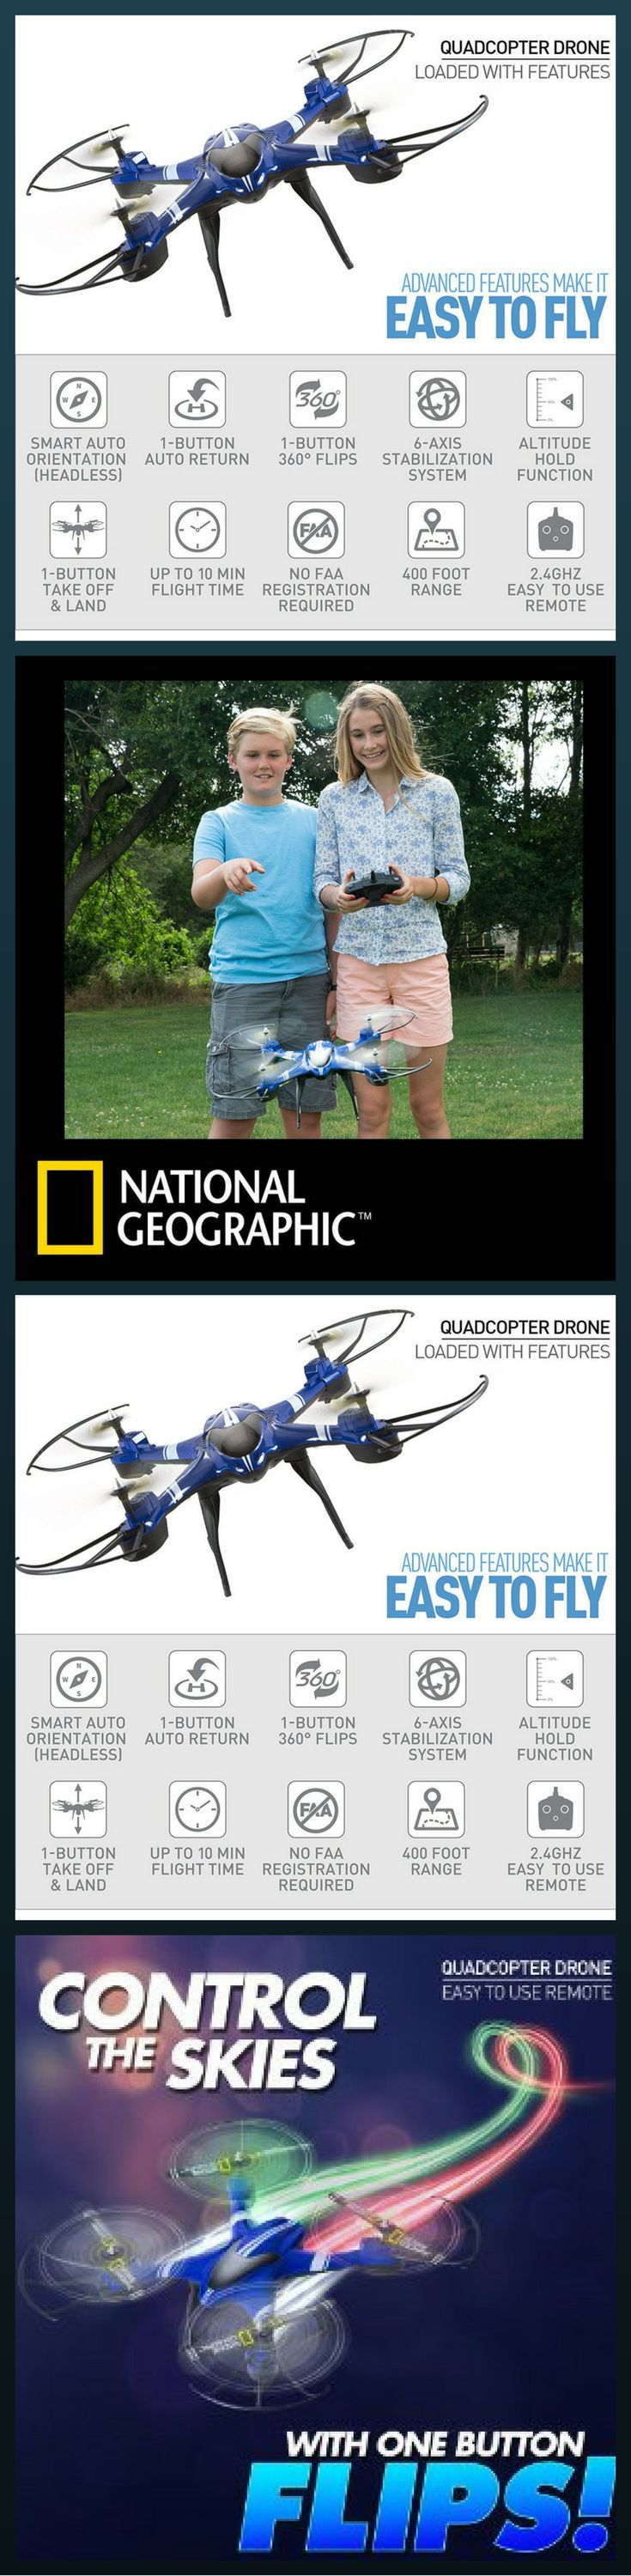 National geographic Quad-copter drone UAV With a kid-friendly design (age 14+) and an easy to use remote, our quad drone is great for novice pilots Auto-orientation and 1-button controls allow you to take-off, land and perform 360-degree flips, while built-in speed settings offer maneuverability and control.